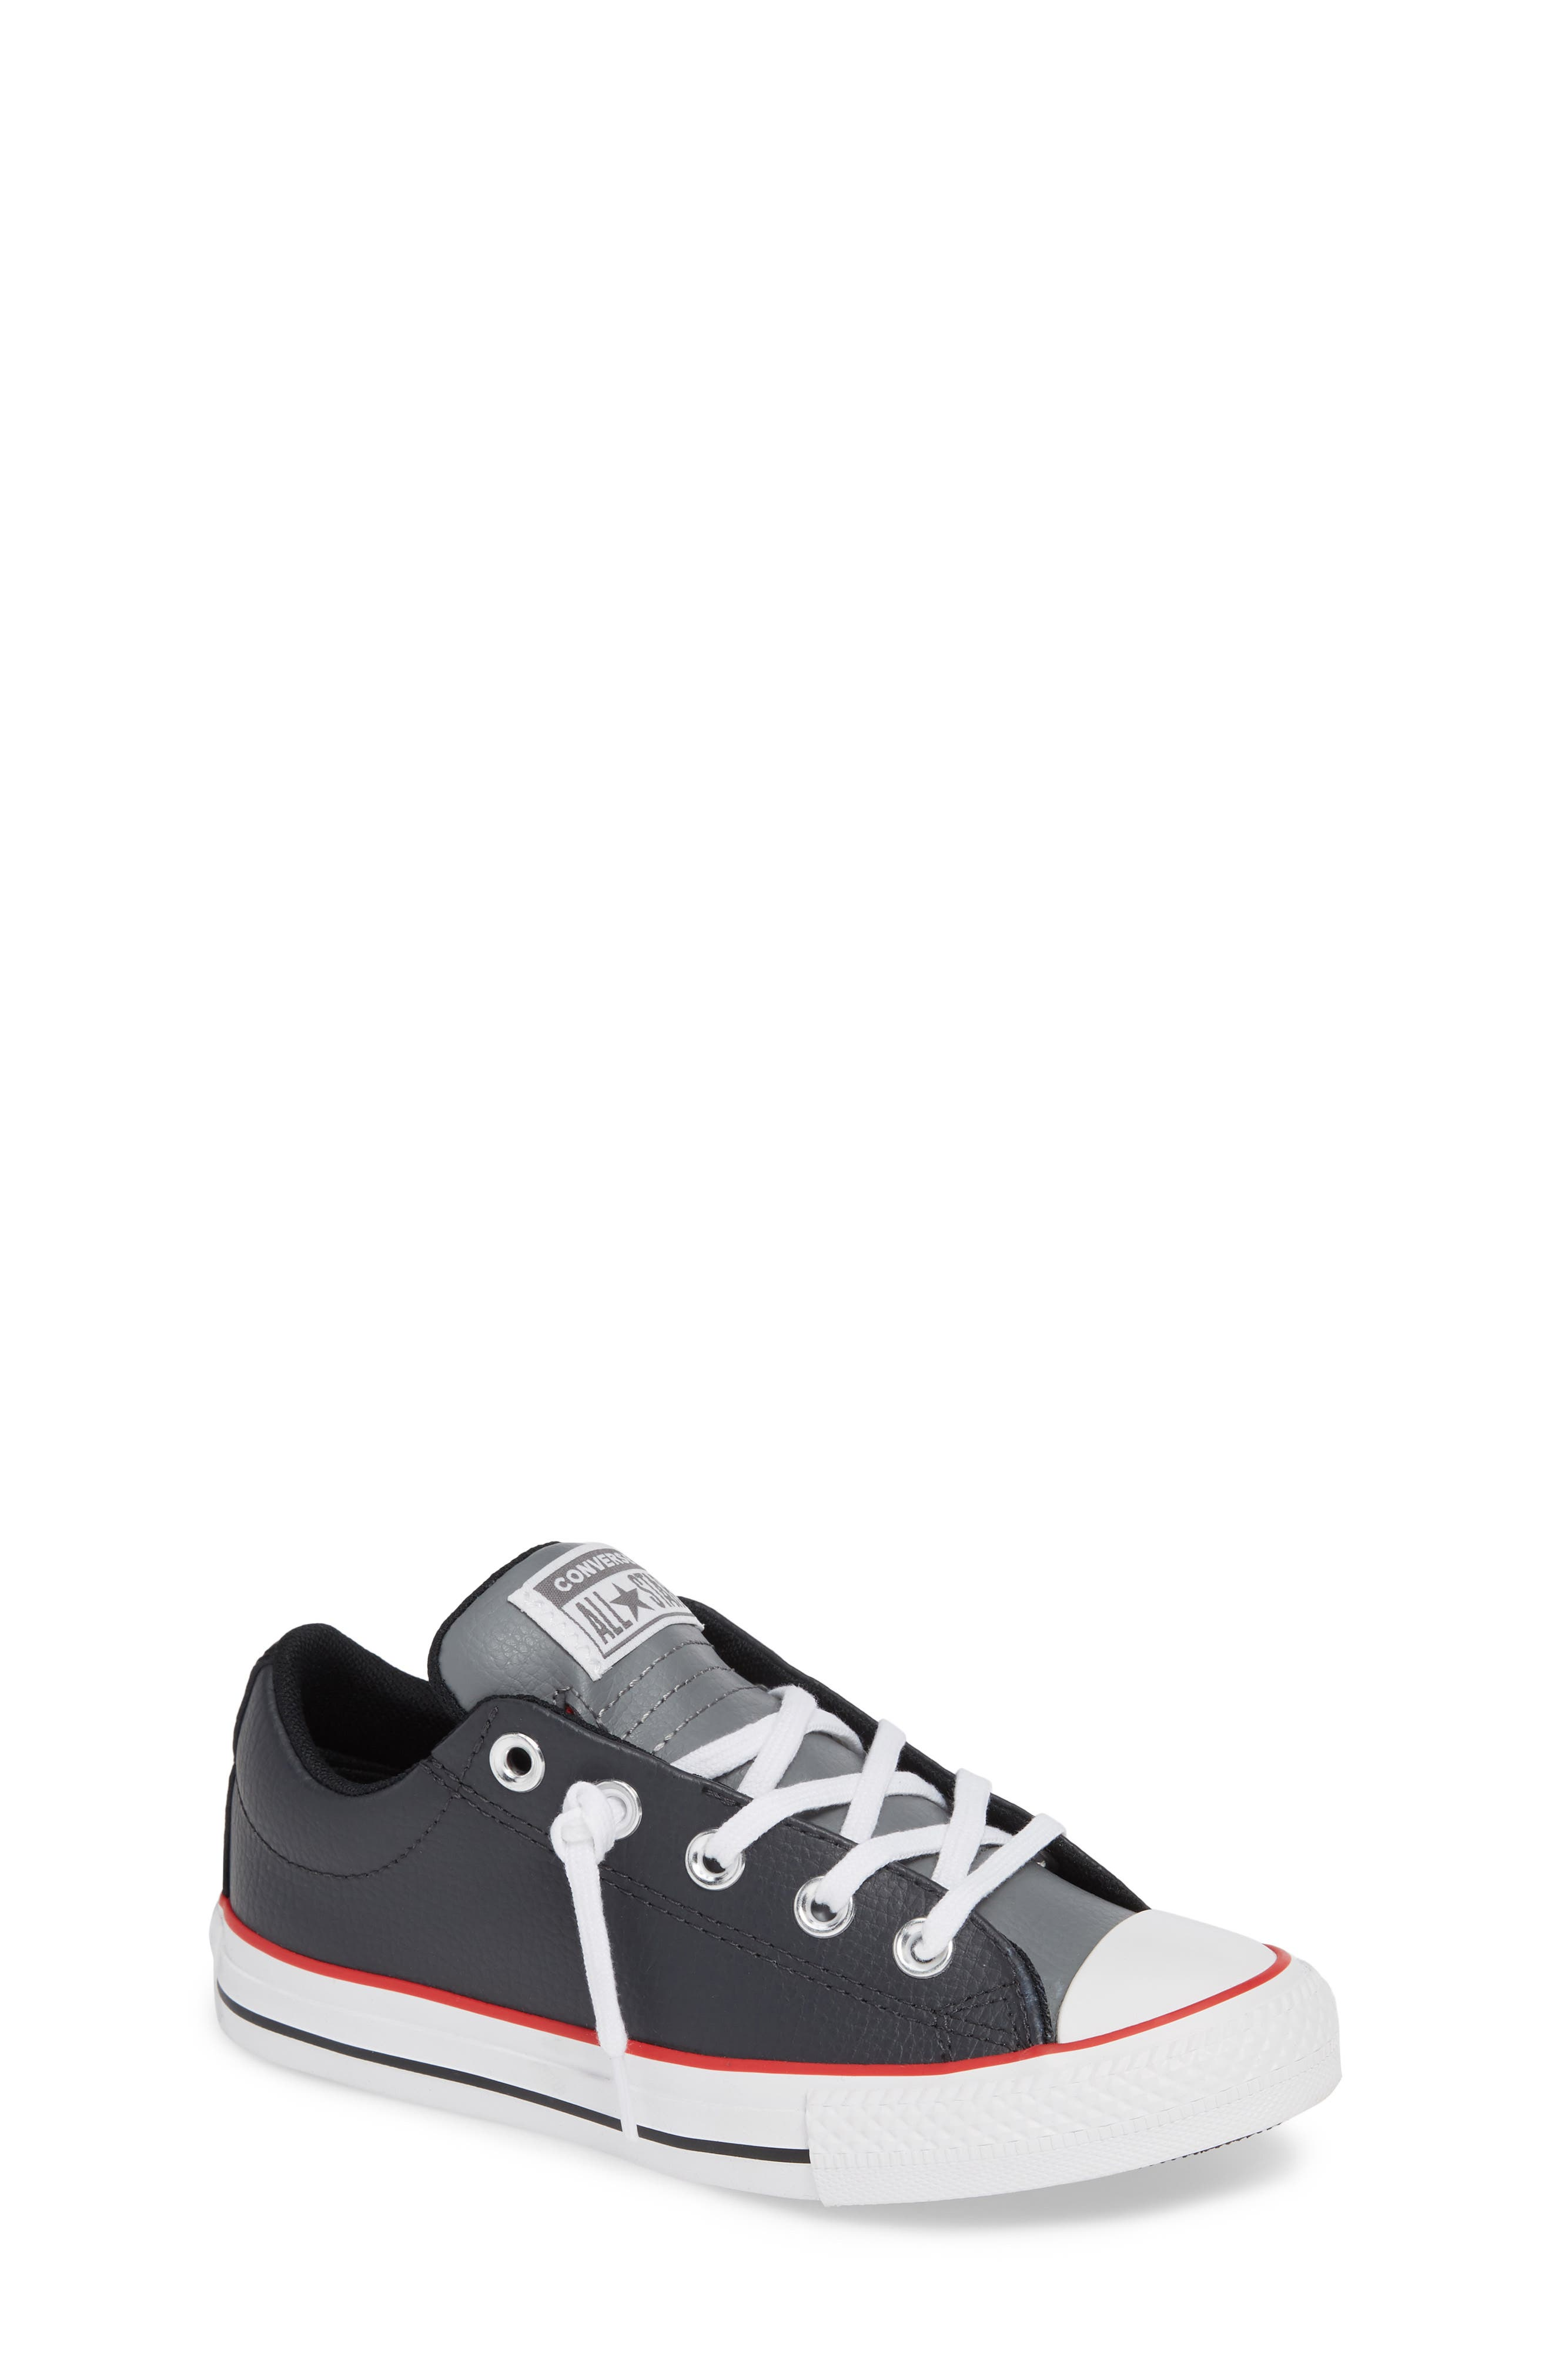 CONVERSE, Chuck Taylor<sup>®</sup> All Star<sup>®</sup> Collegiate Street Leather Slip-On Sneaker, Main thumbnail 1, color, ALMOST BLACK